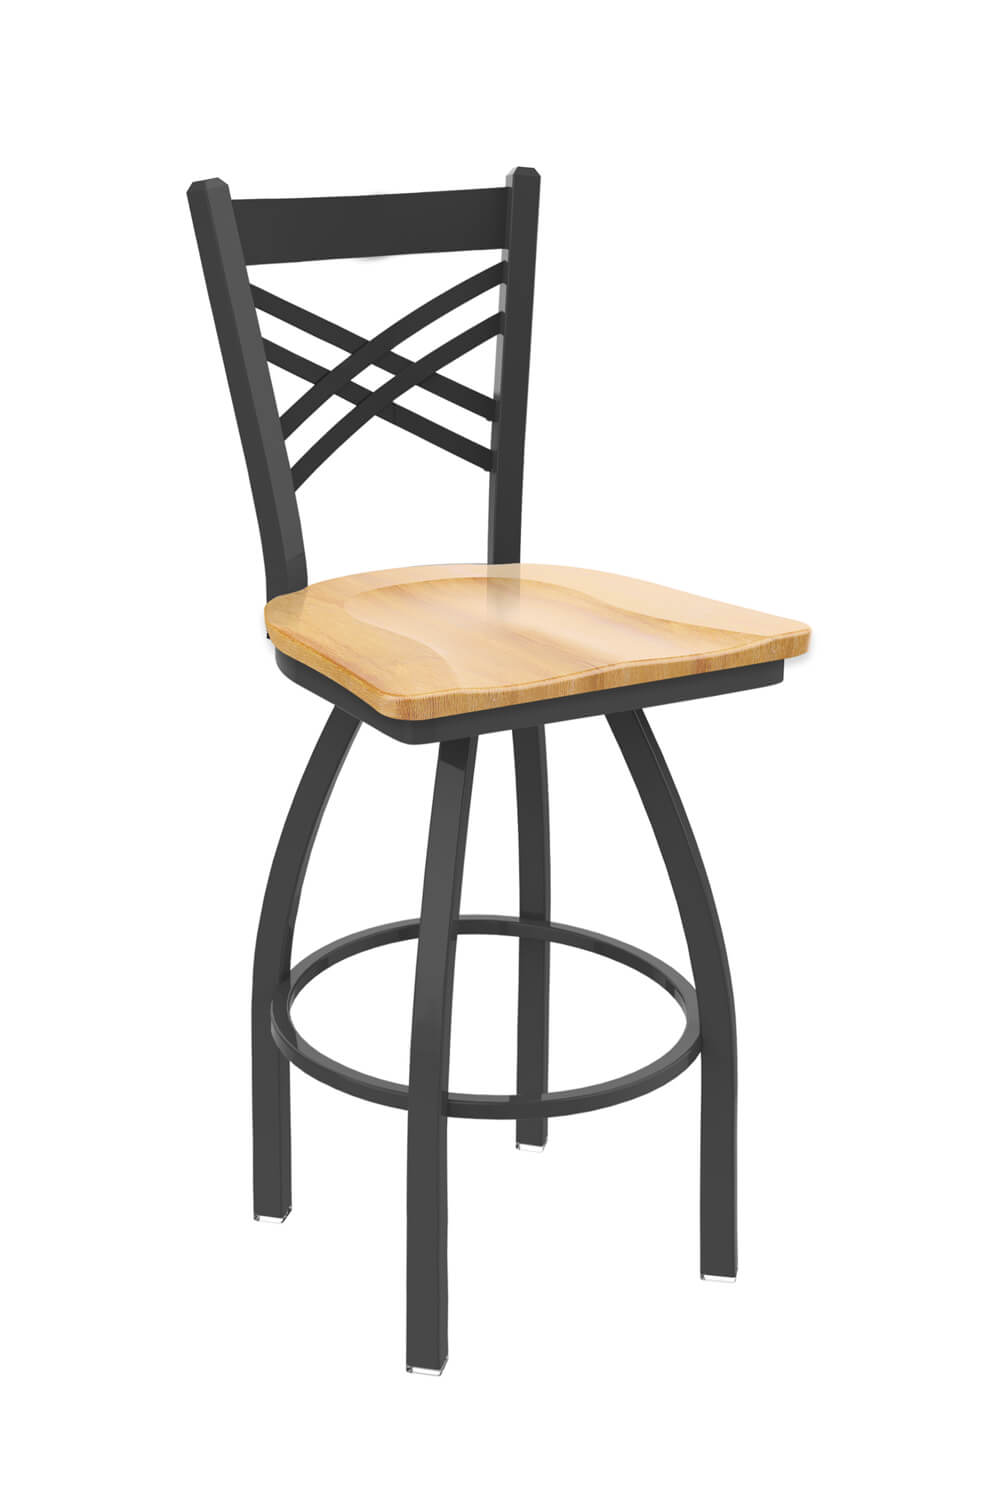 Pleasing Catalina Swivel Stool 820 Ibusinesslaw Wood Chair Design Ideas Ibusinesslaworg